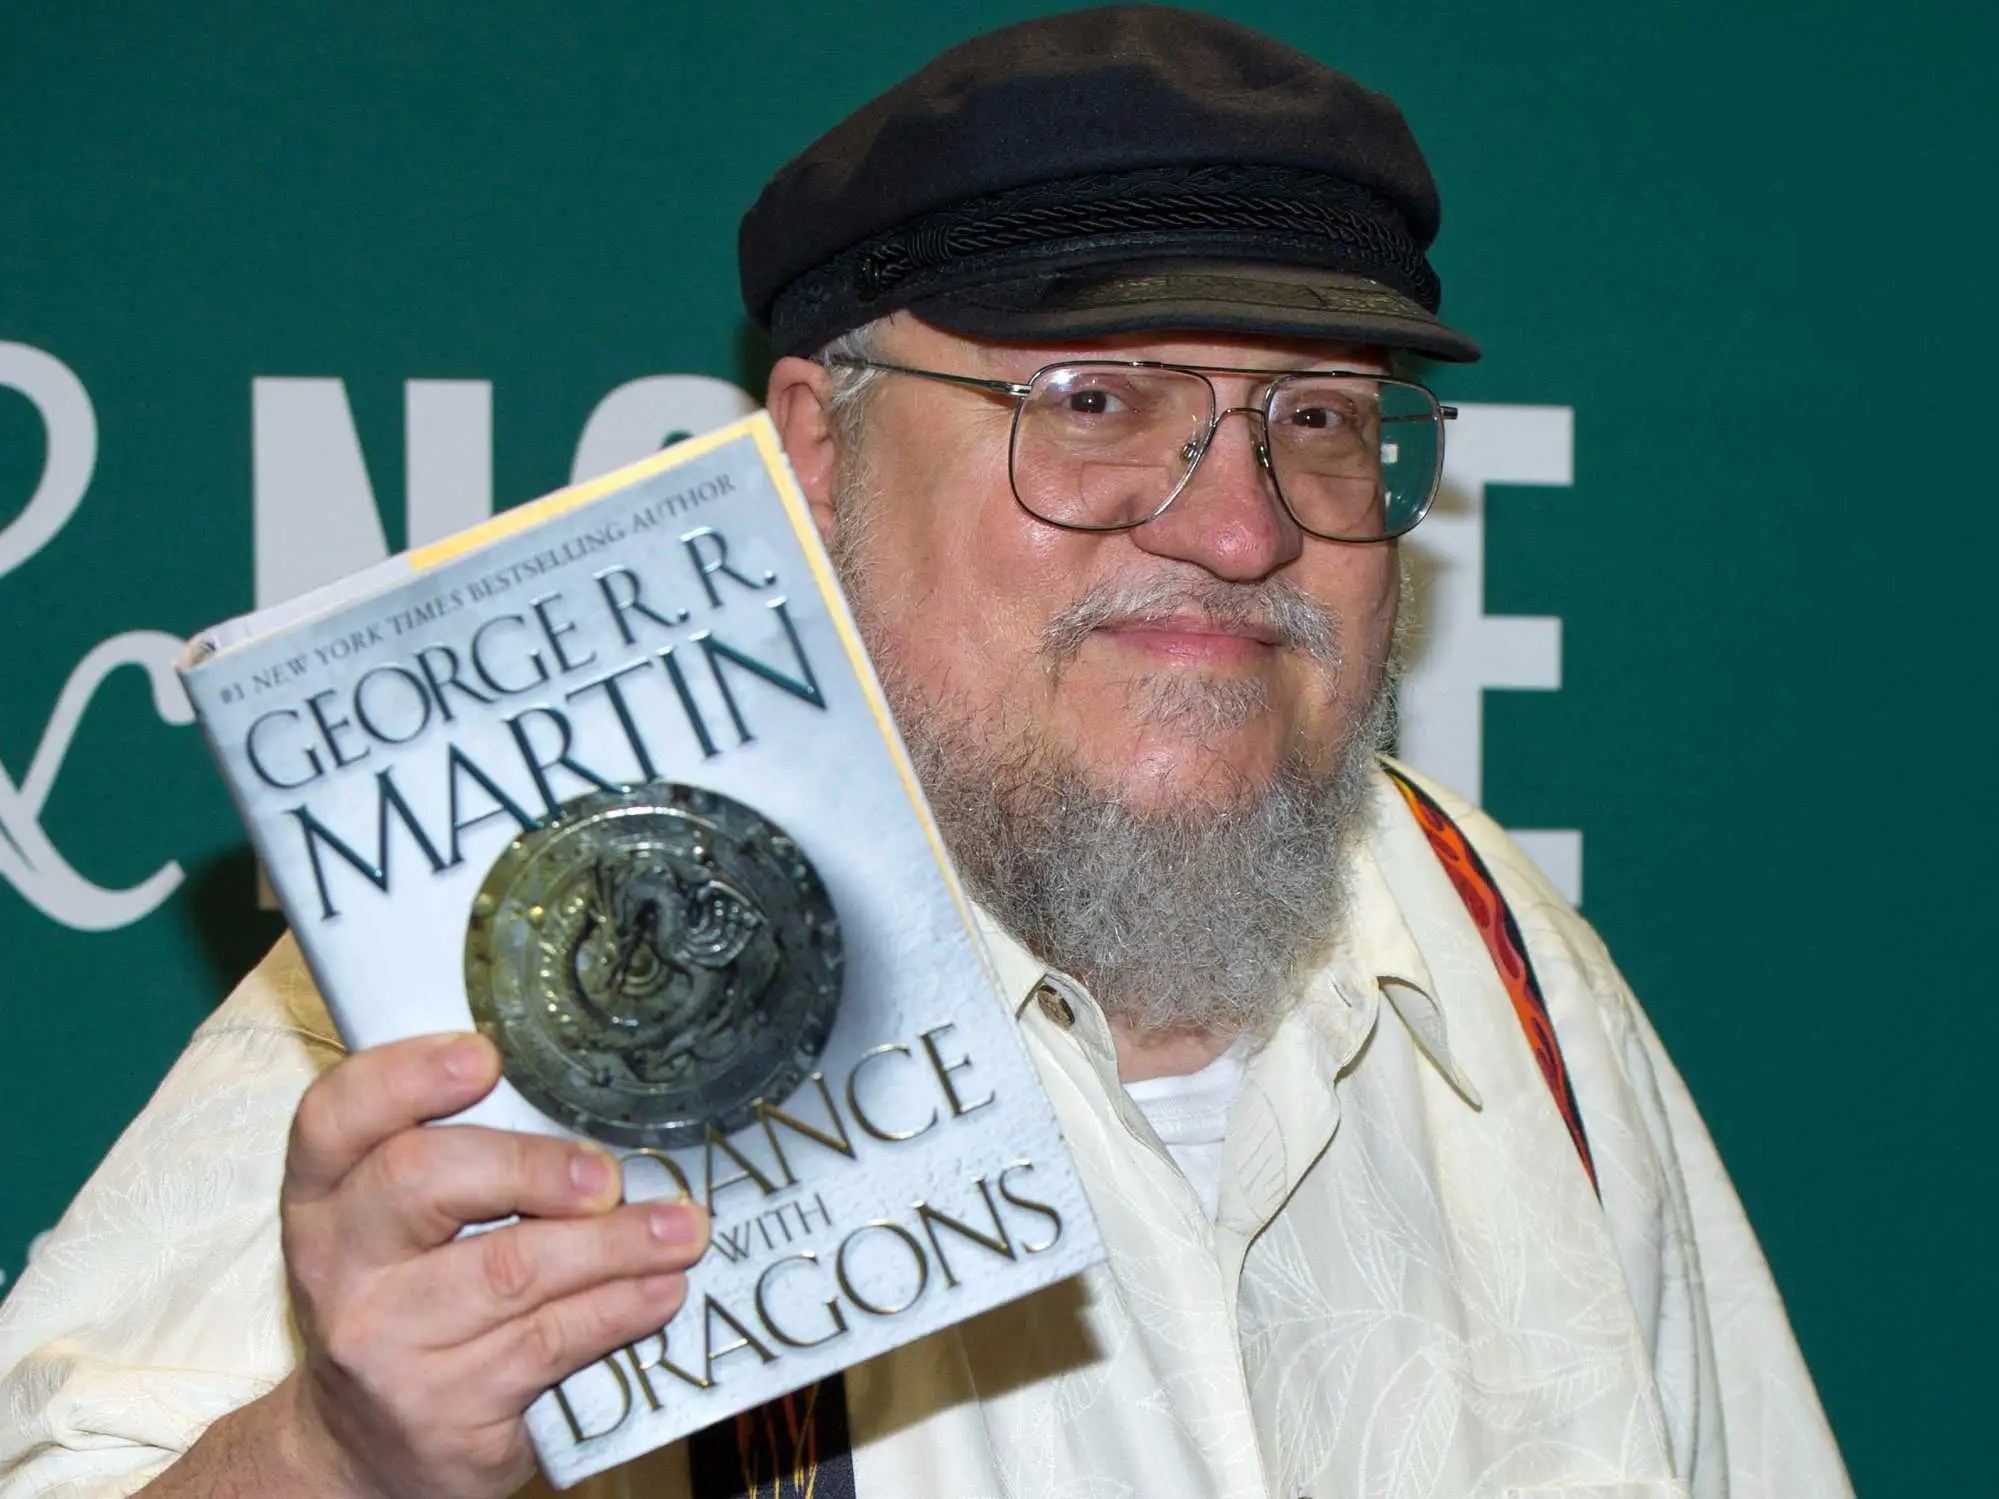 George Rr Martin Libros Game Of Thrones 39game Of Thrones 39 Author George R R Martin Just Posted A